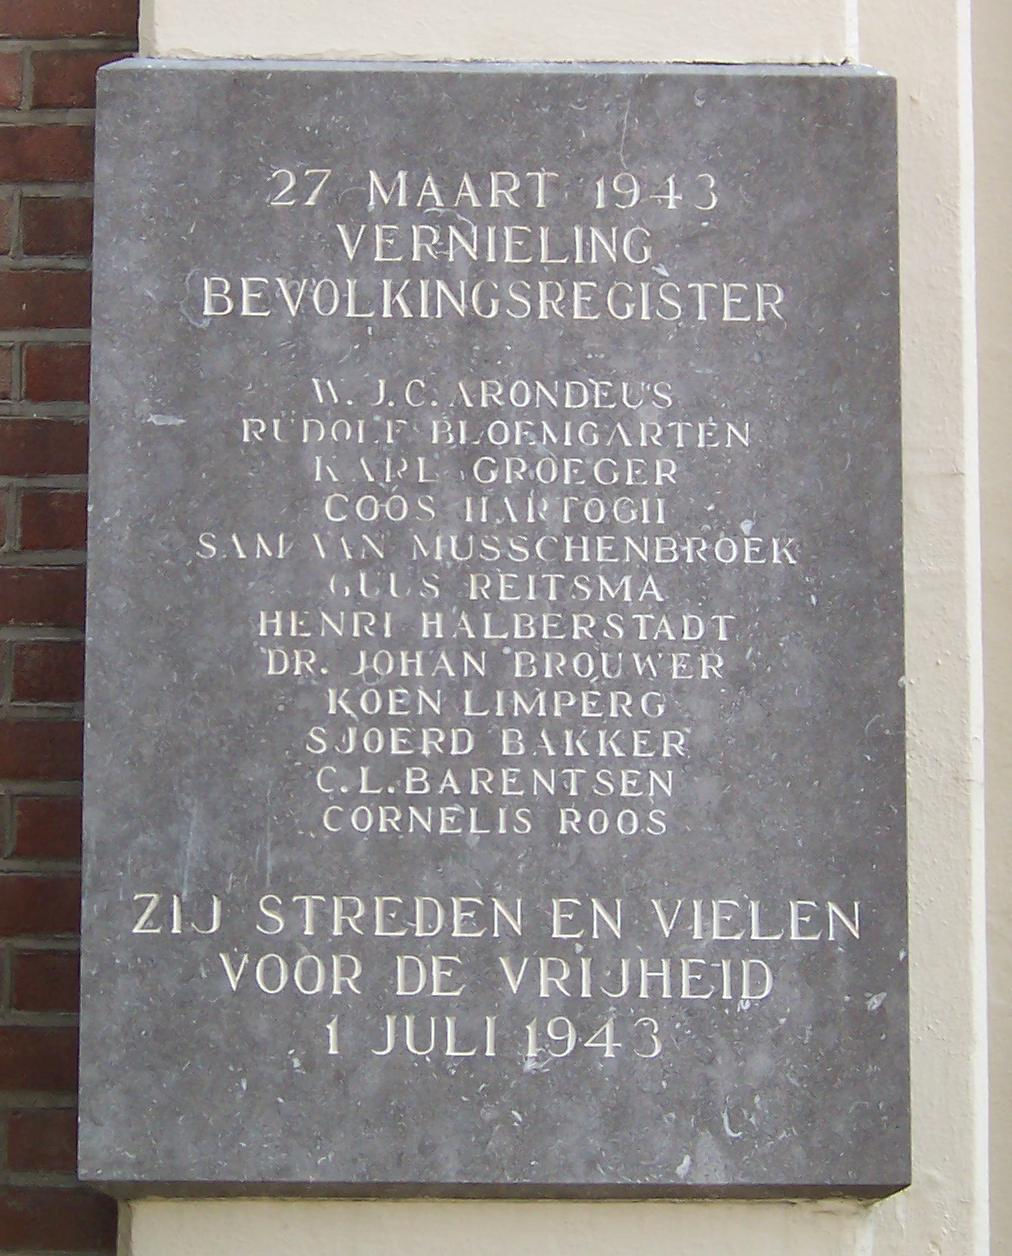 Photo of Karl Gröger: Dutch Righteous Among the Nations